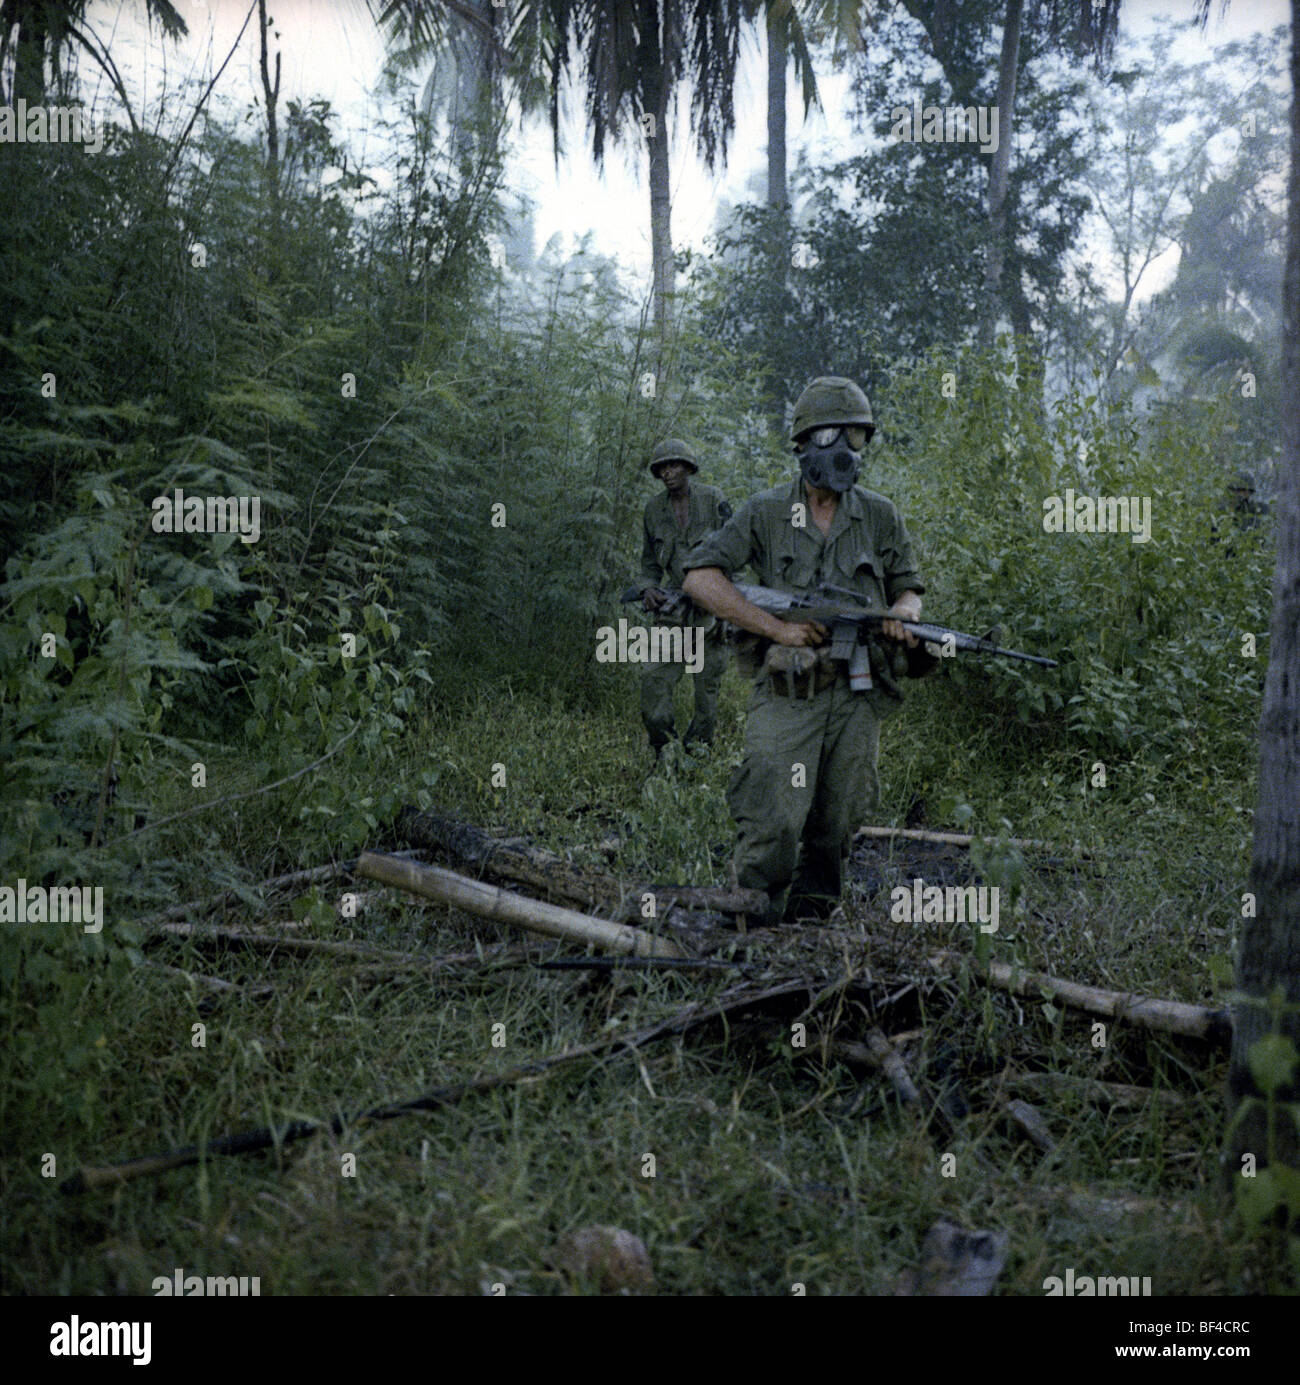 Infantry of B Troop, 1st Squadron, 9th Cavalry on patrol during during the Vietnam War in 1967. - Stock Image